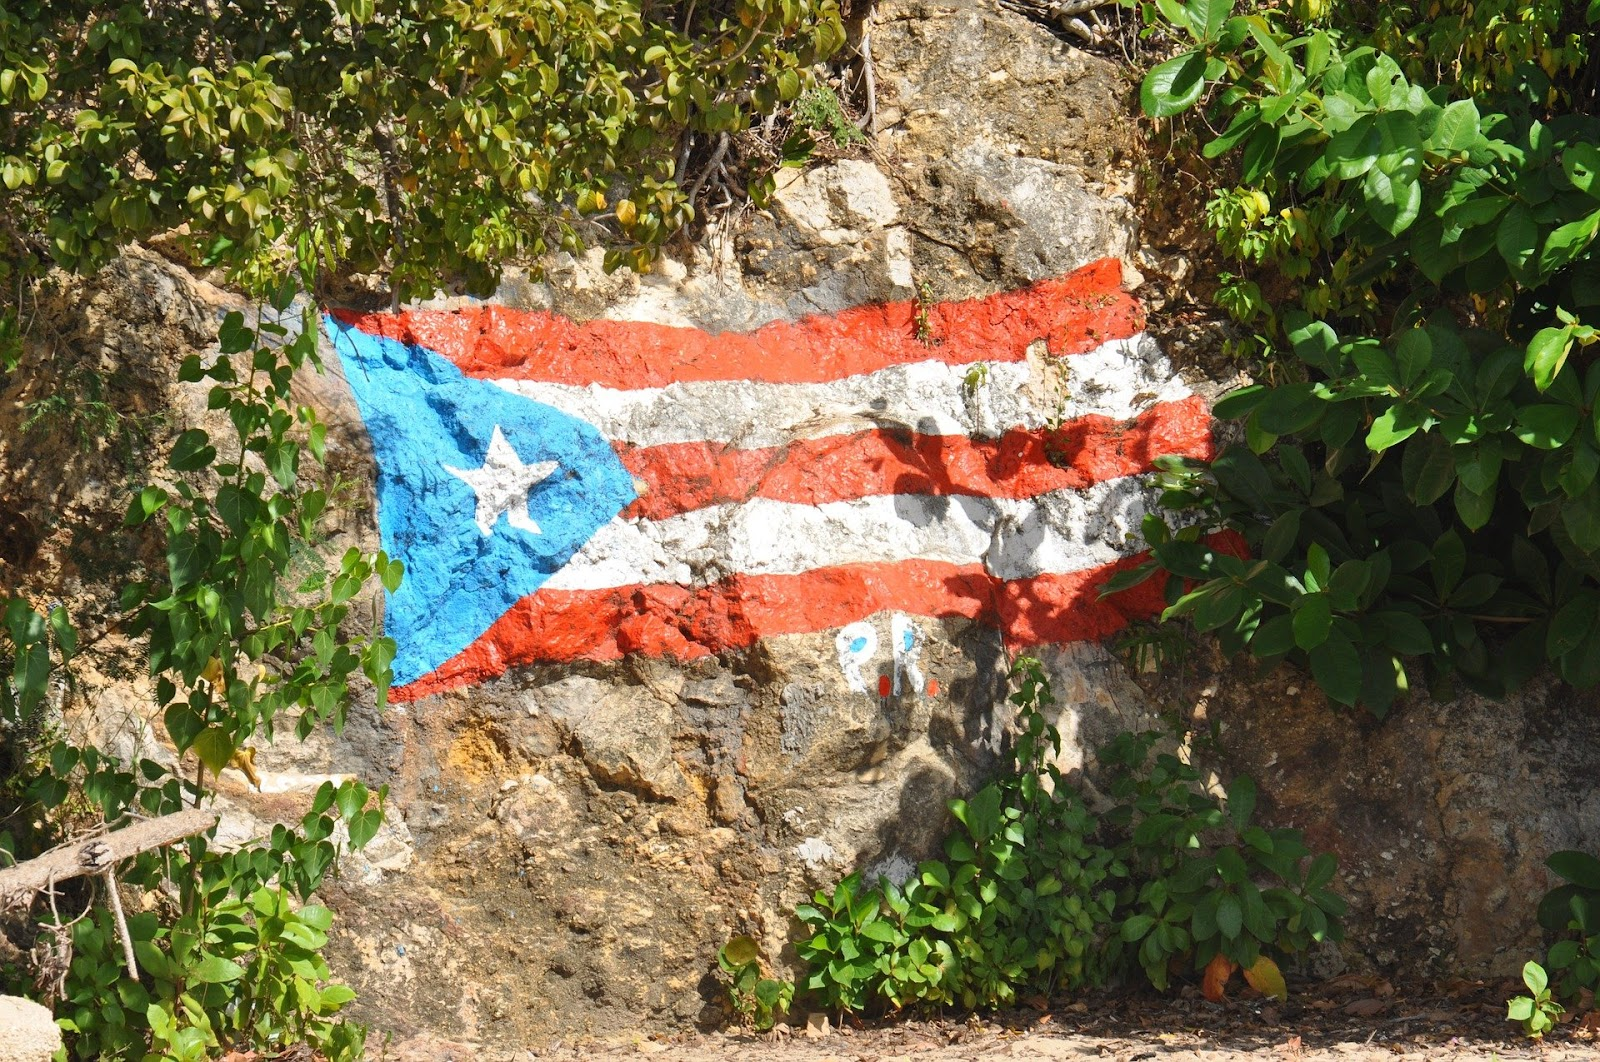 Puerto Rican flag painted on a rock